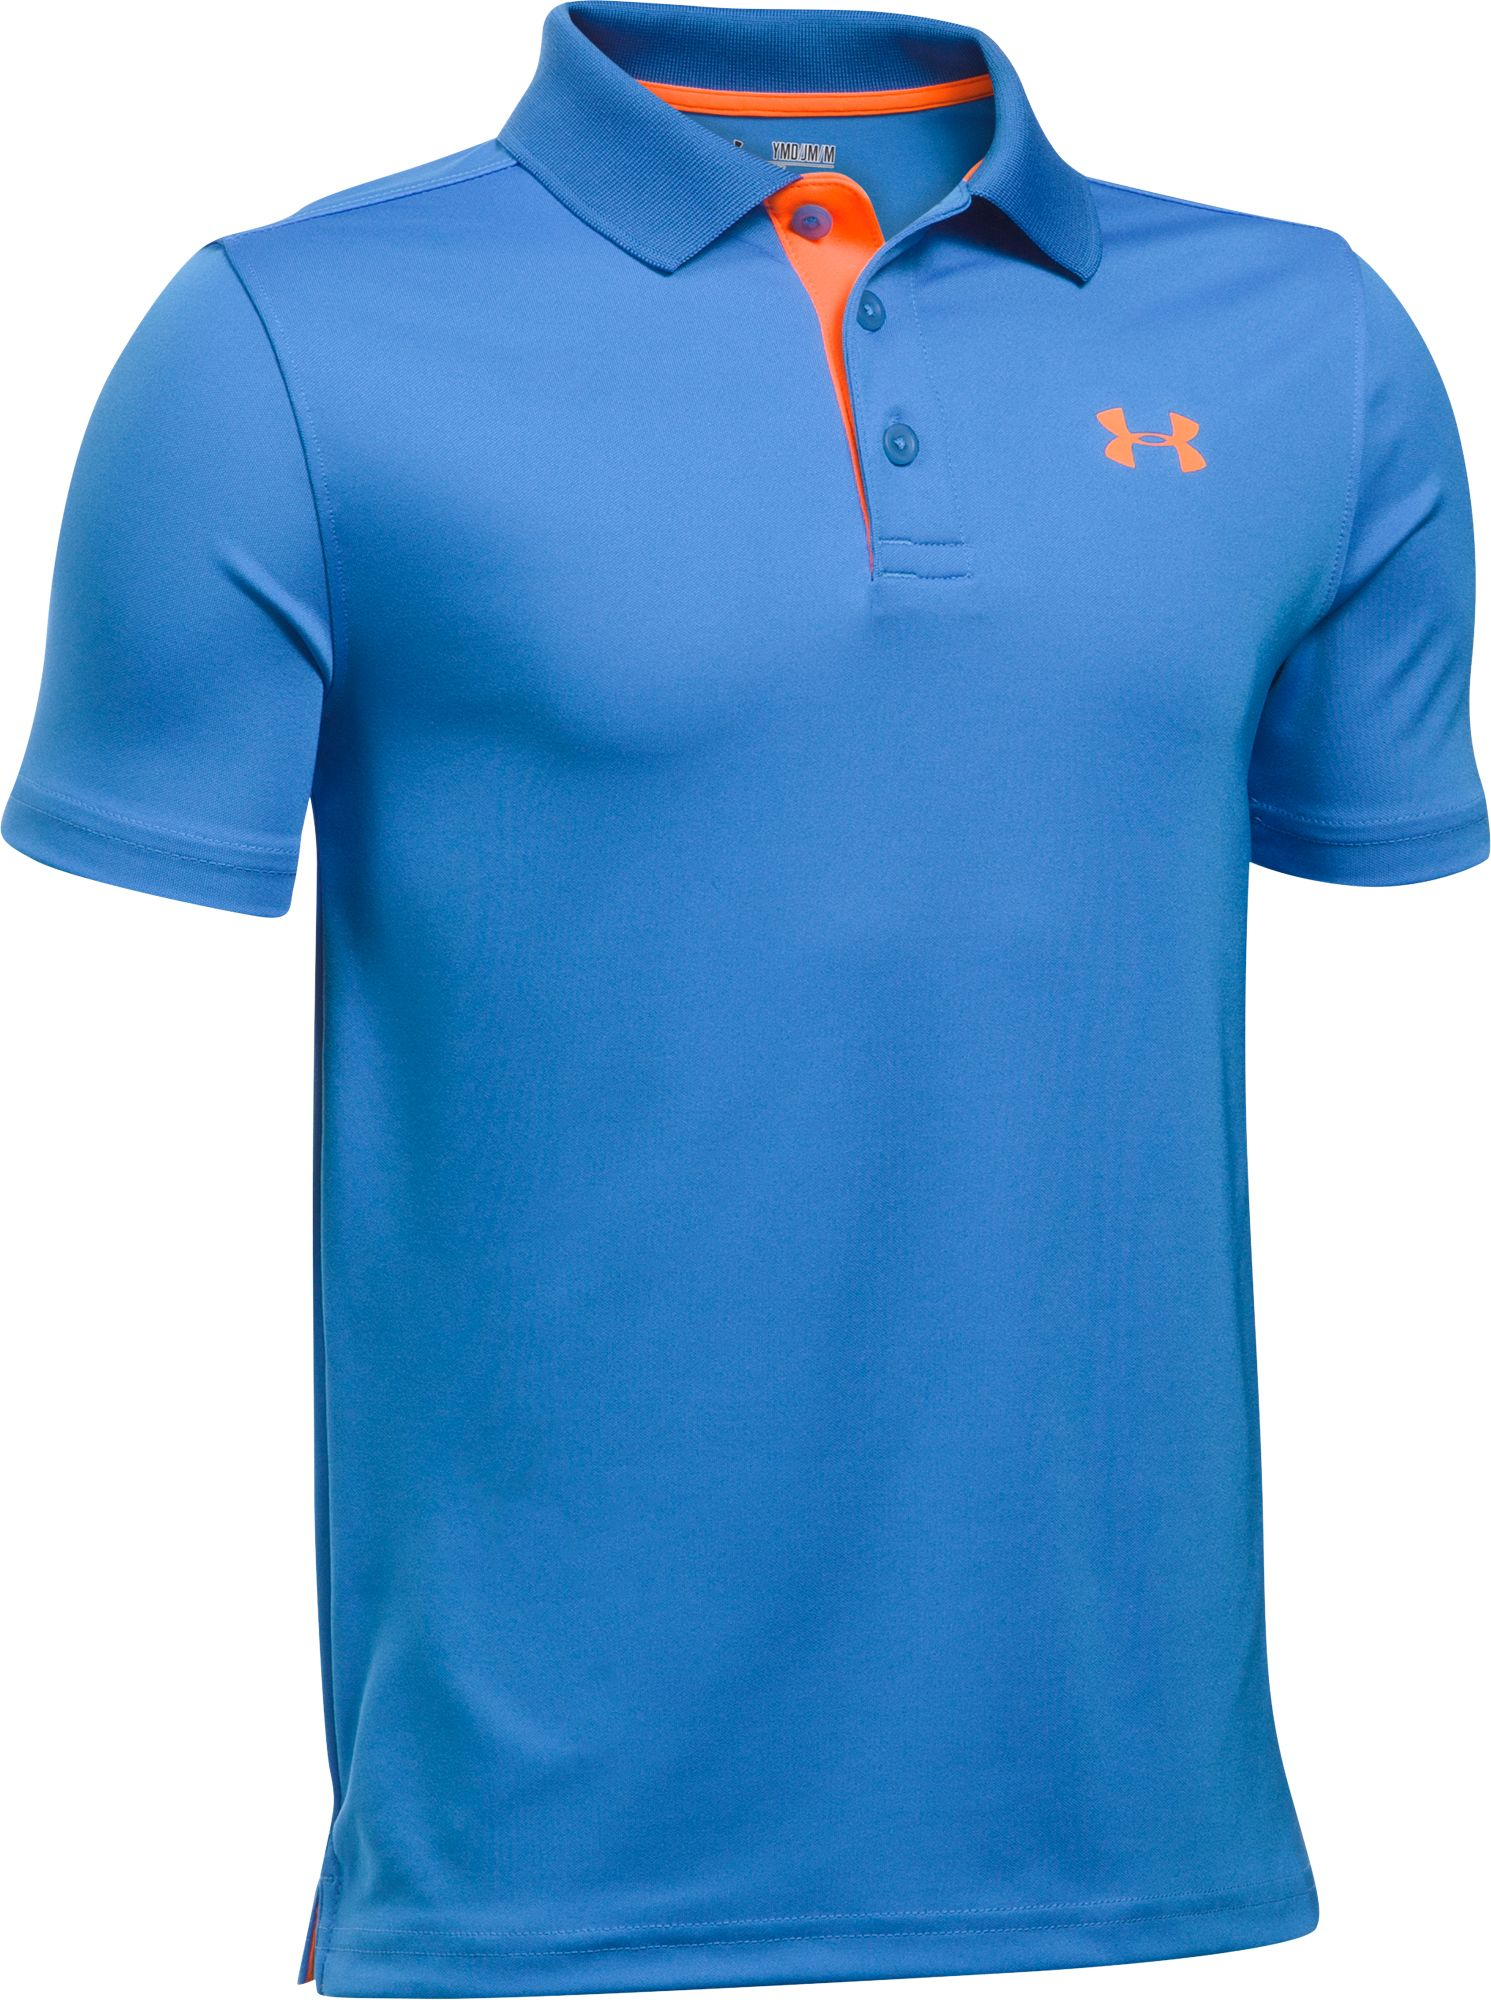 20002666 Under Armour Boys' Performance Golf Polo, Size: XS, Academy   Products